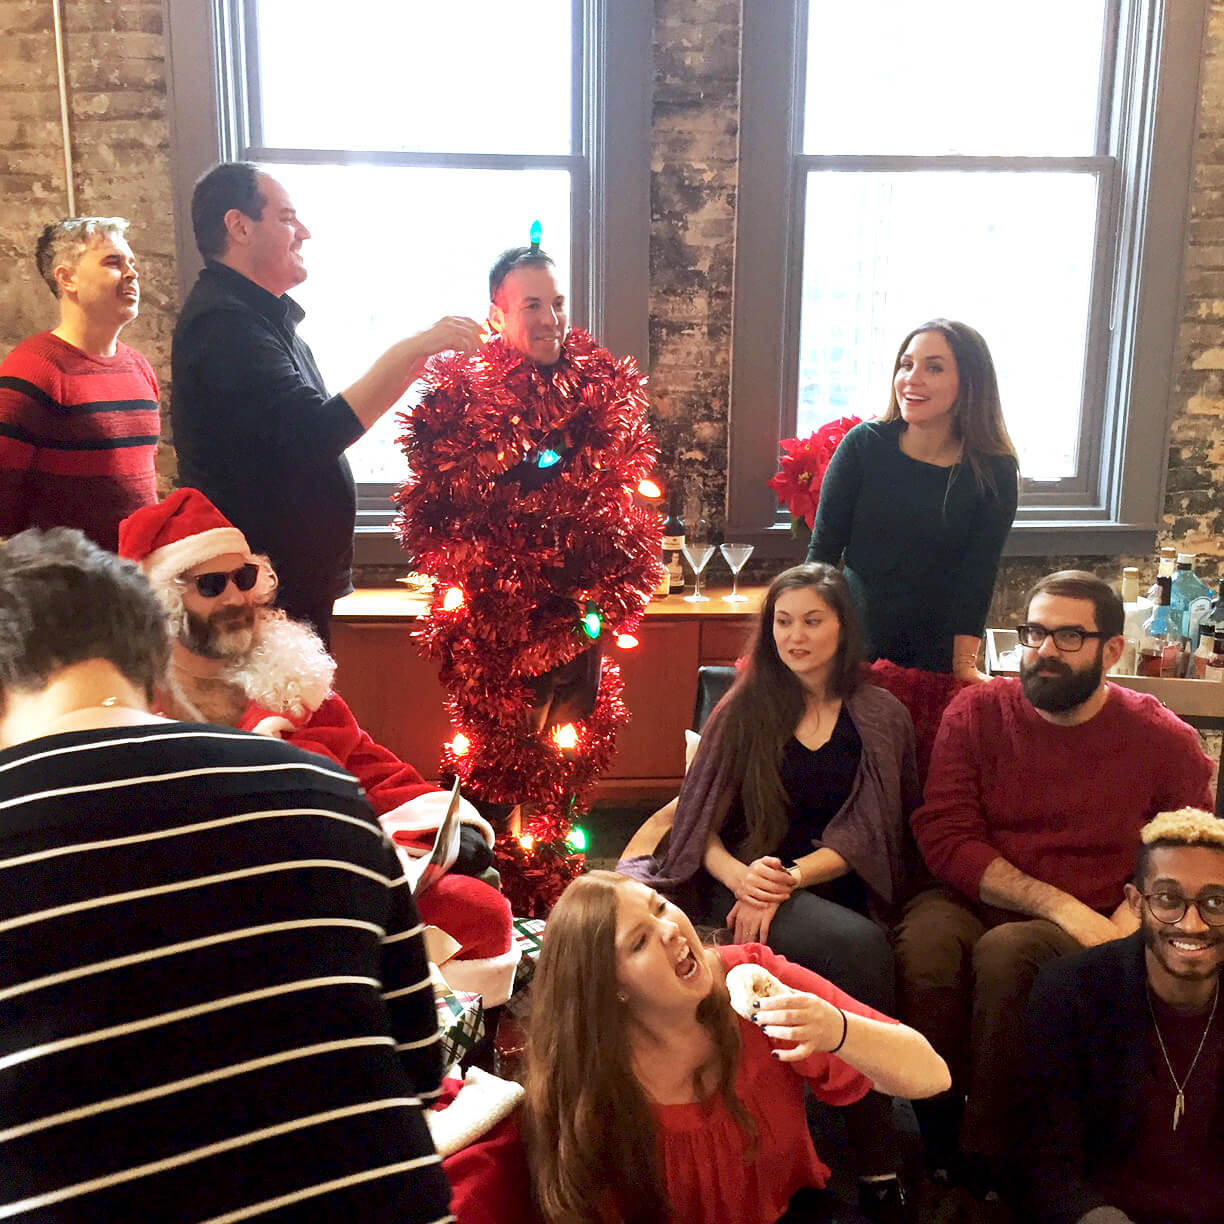 Behind the scenes of holiday card shoot.